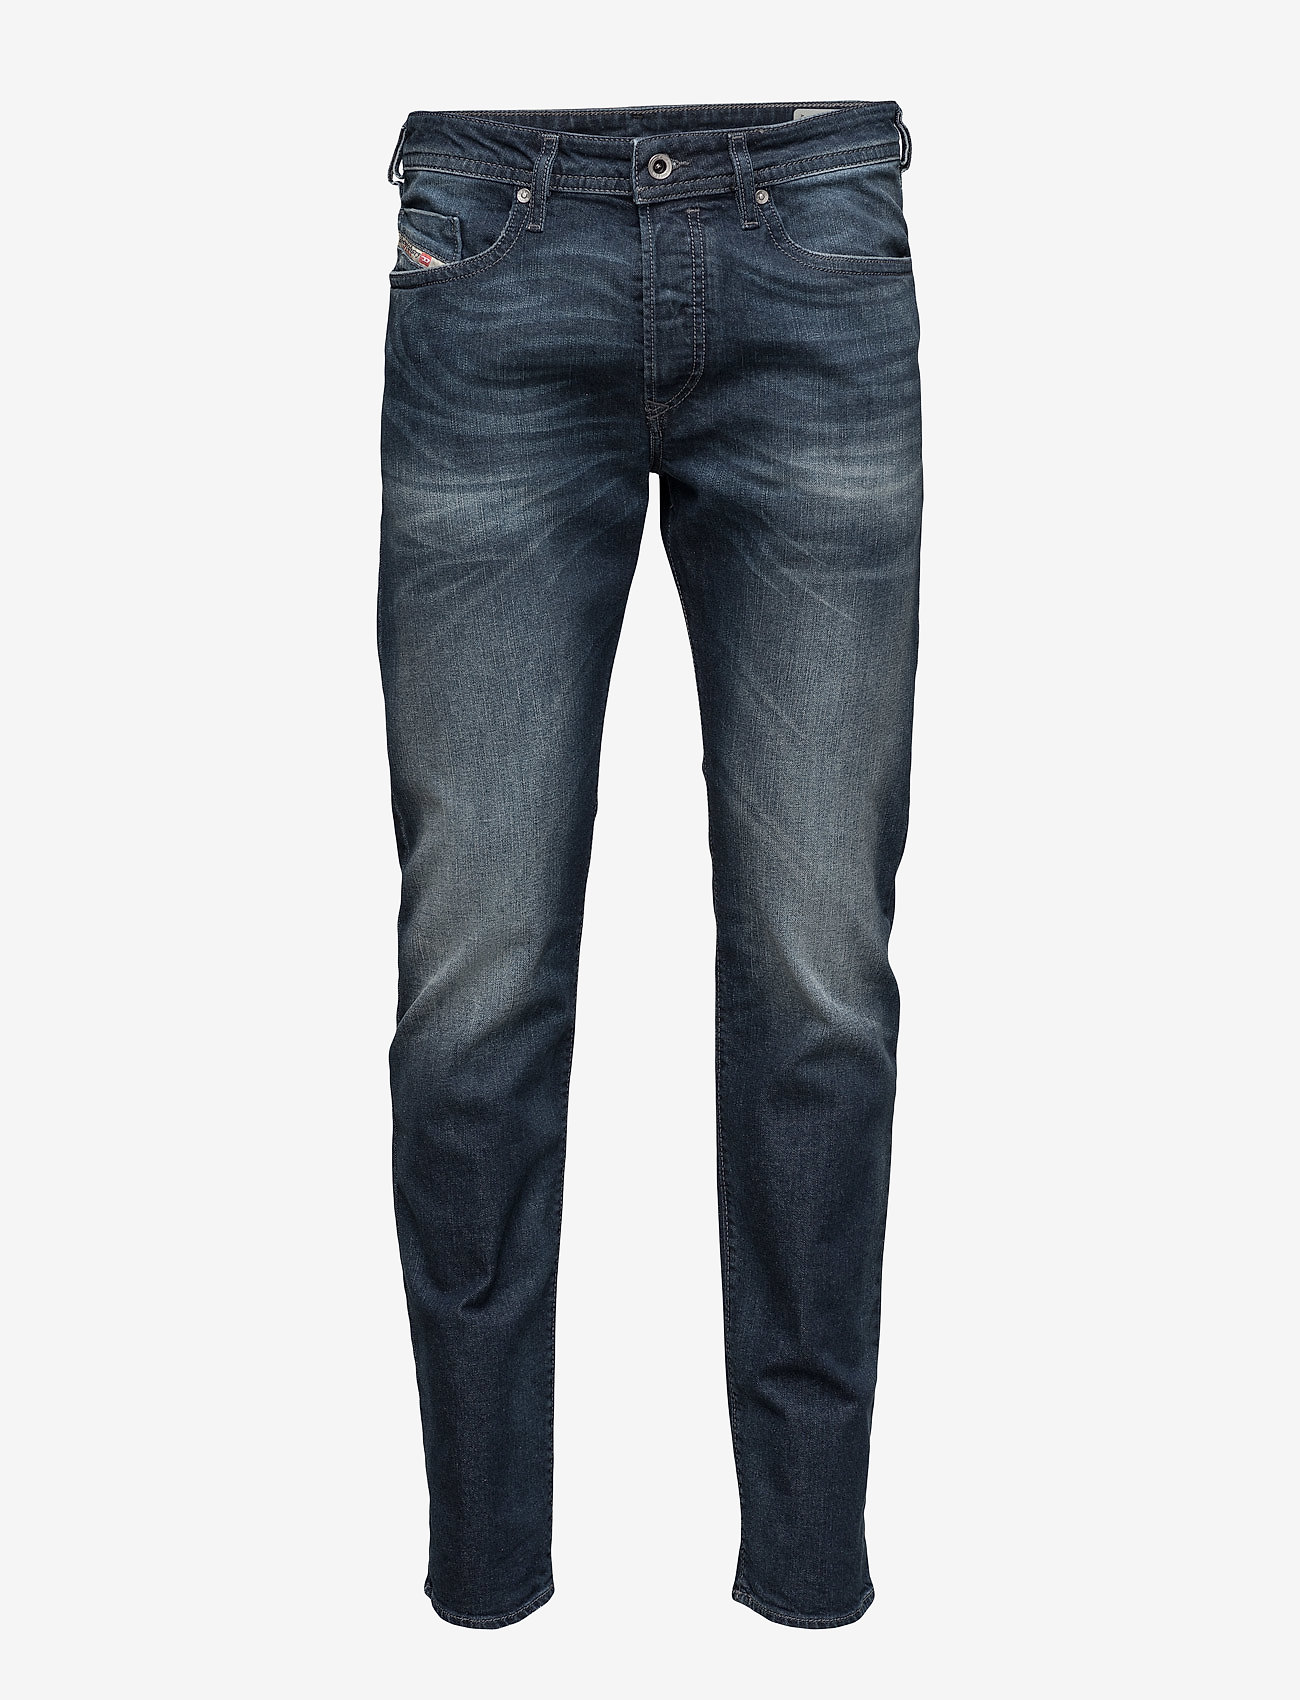 Diesel Men - BUSTER - regular jeans - denim - 0